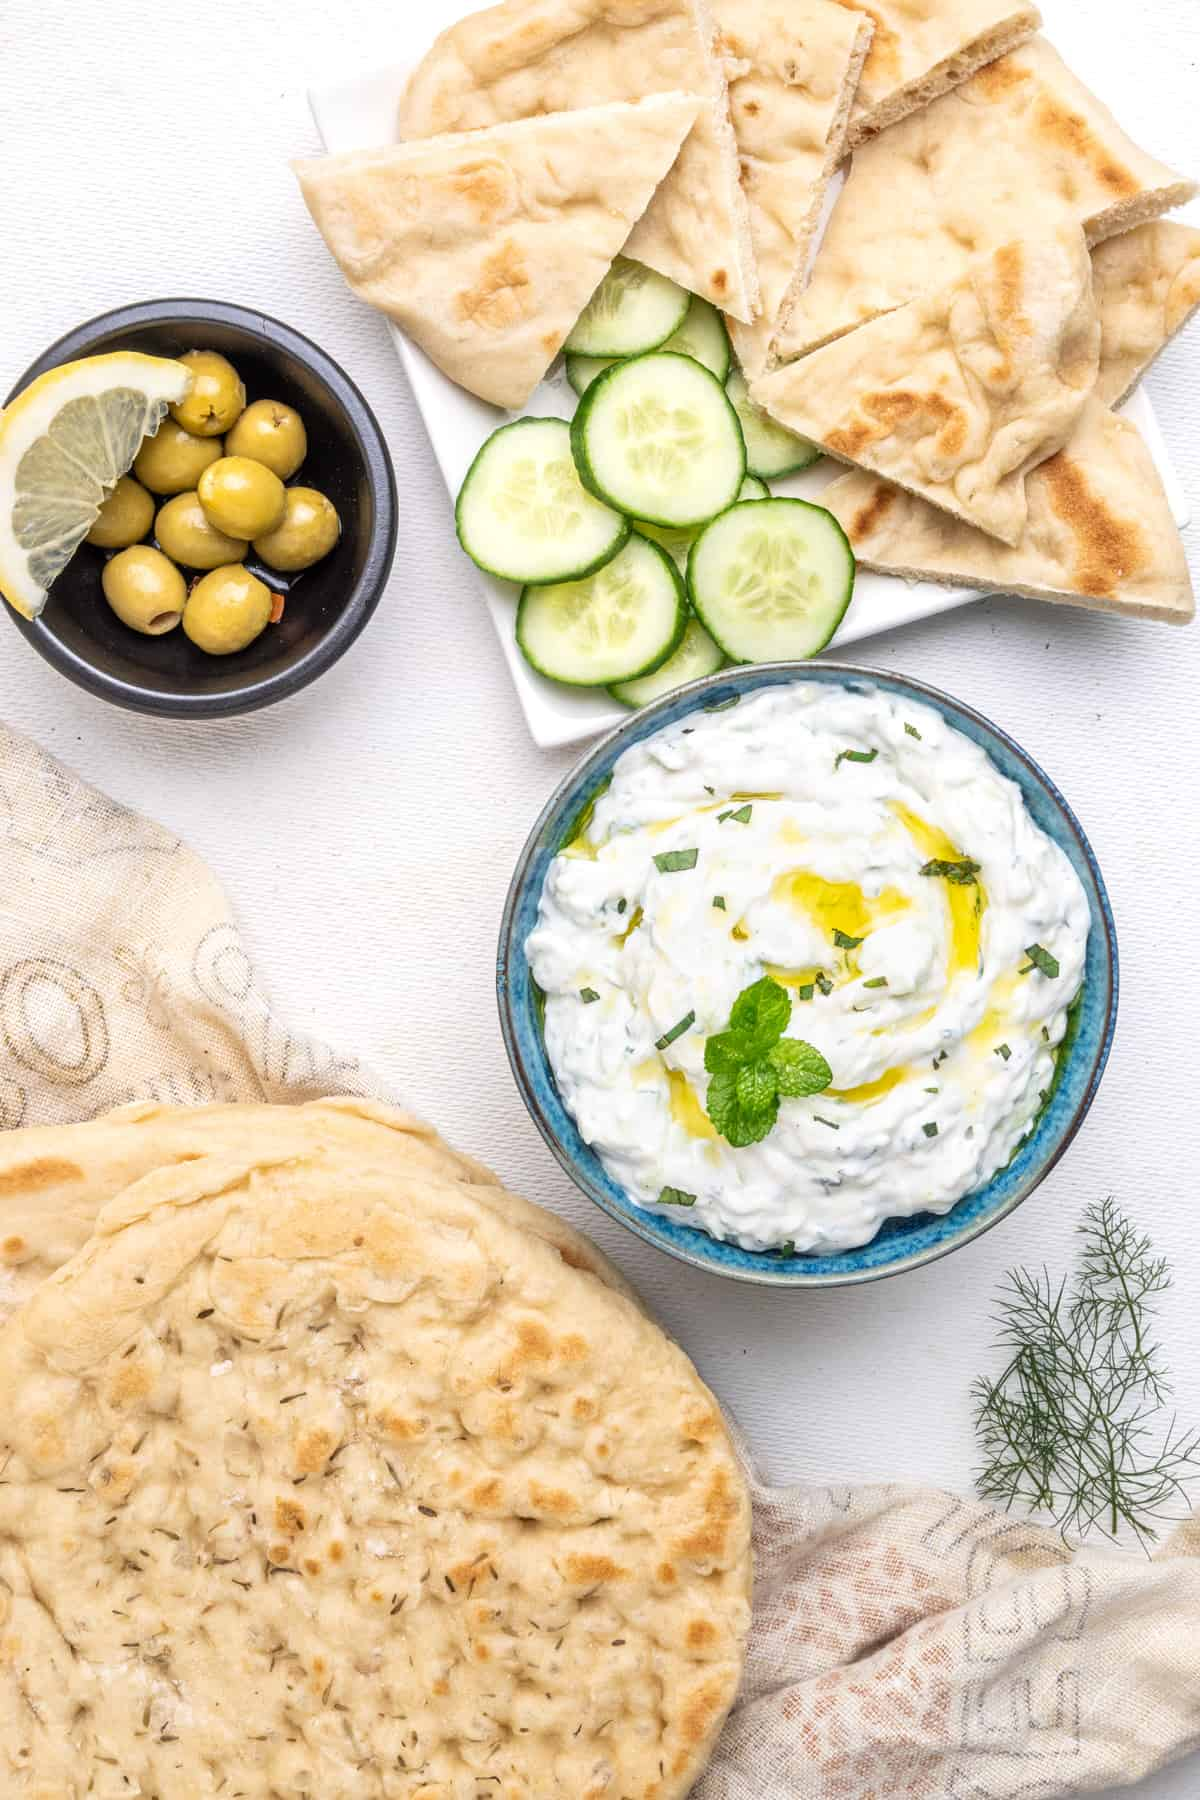 a bowl of tzatziki, drizzled with olive oil and decorated with a sprig of fresh mint, served up with pita bread, olives and slices of cucumber.